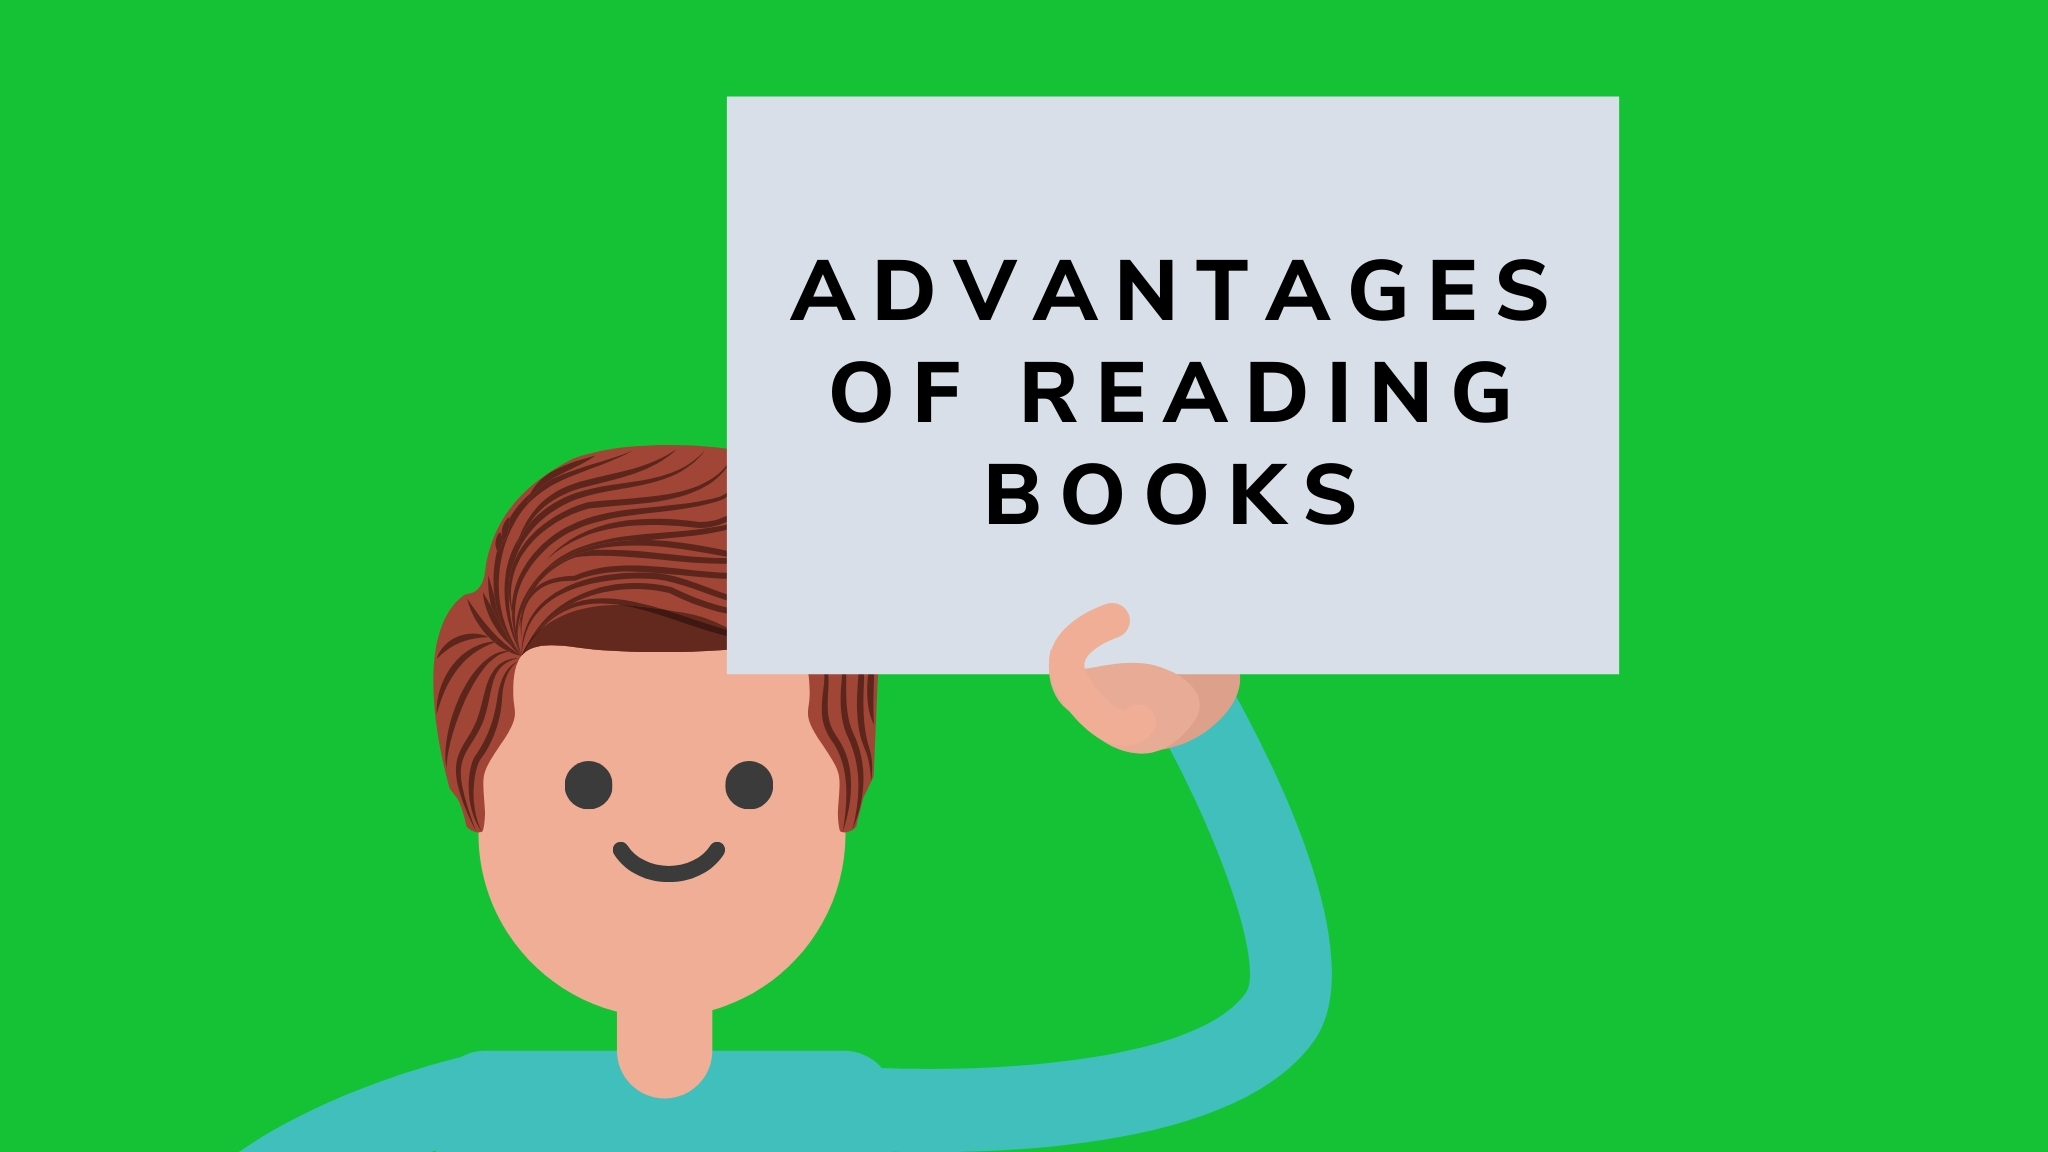 Advantages of reading books